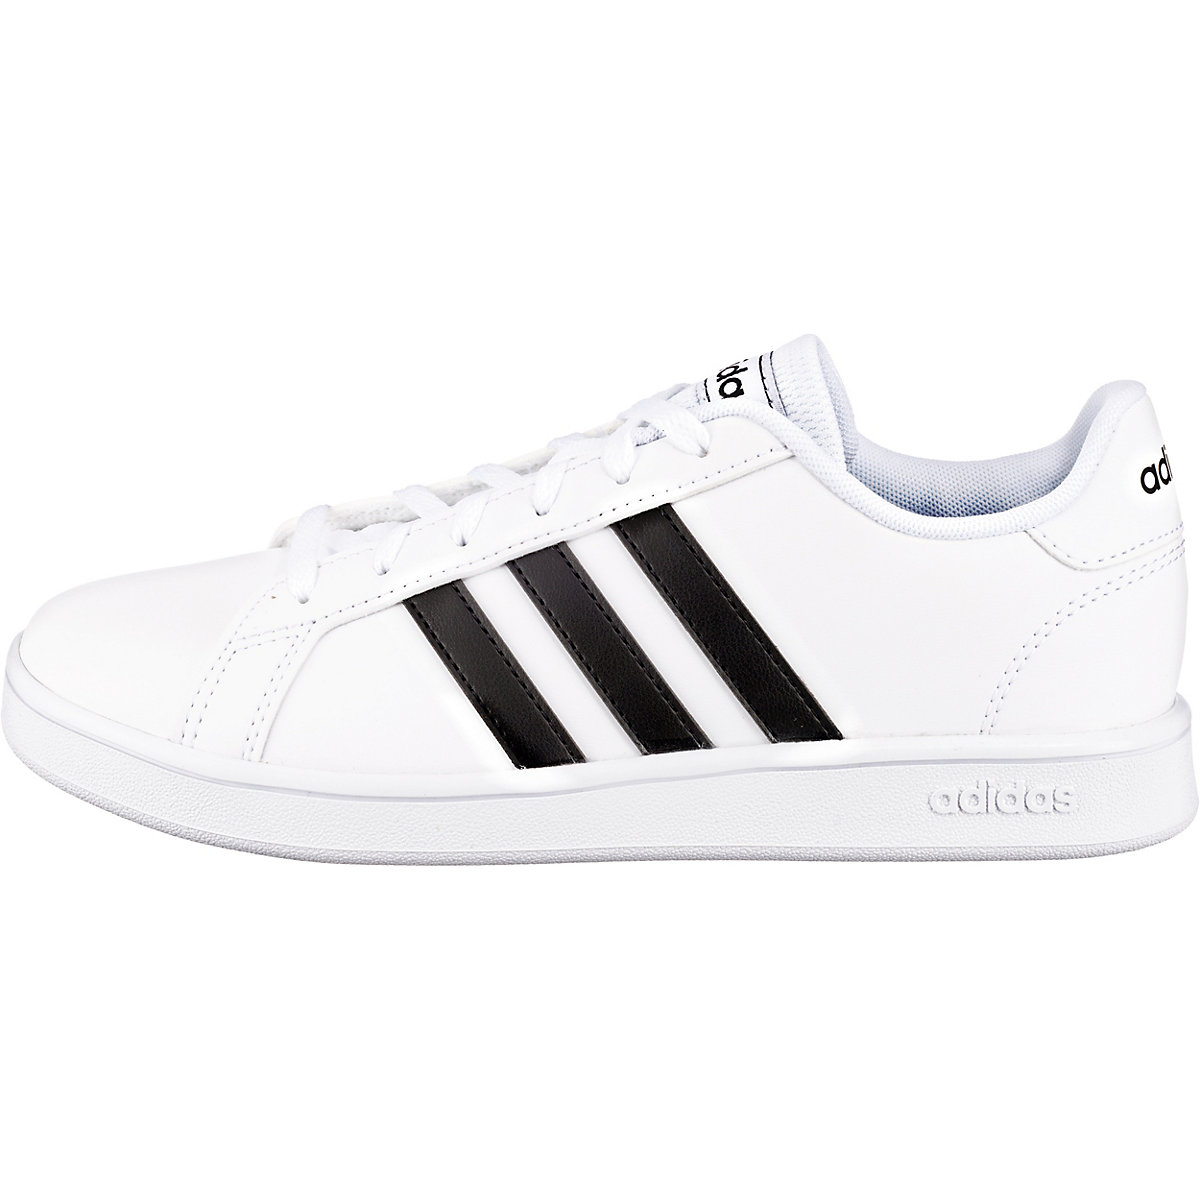 Adidas Sport Inspired, Sneakers Low Grand Court Für Jungen, Weiß Modell 3